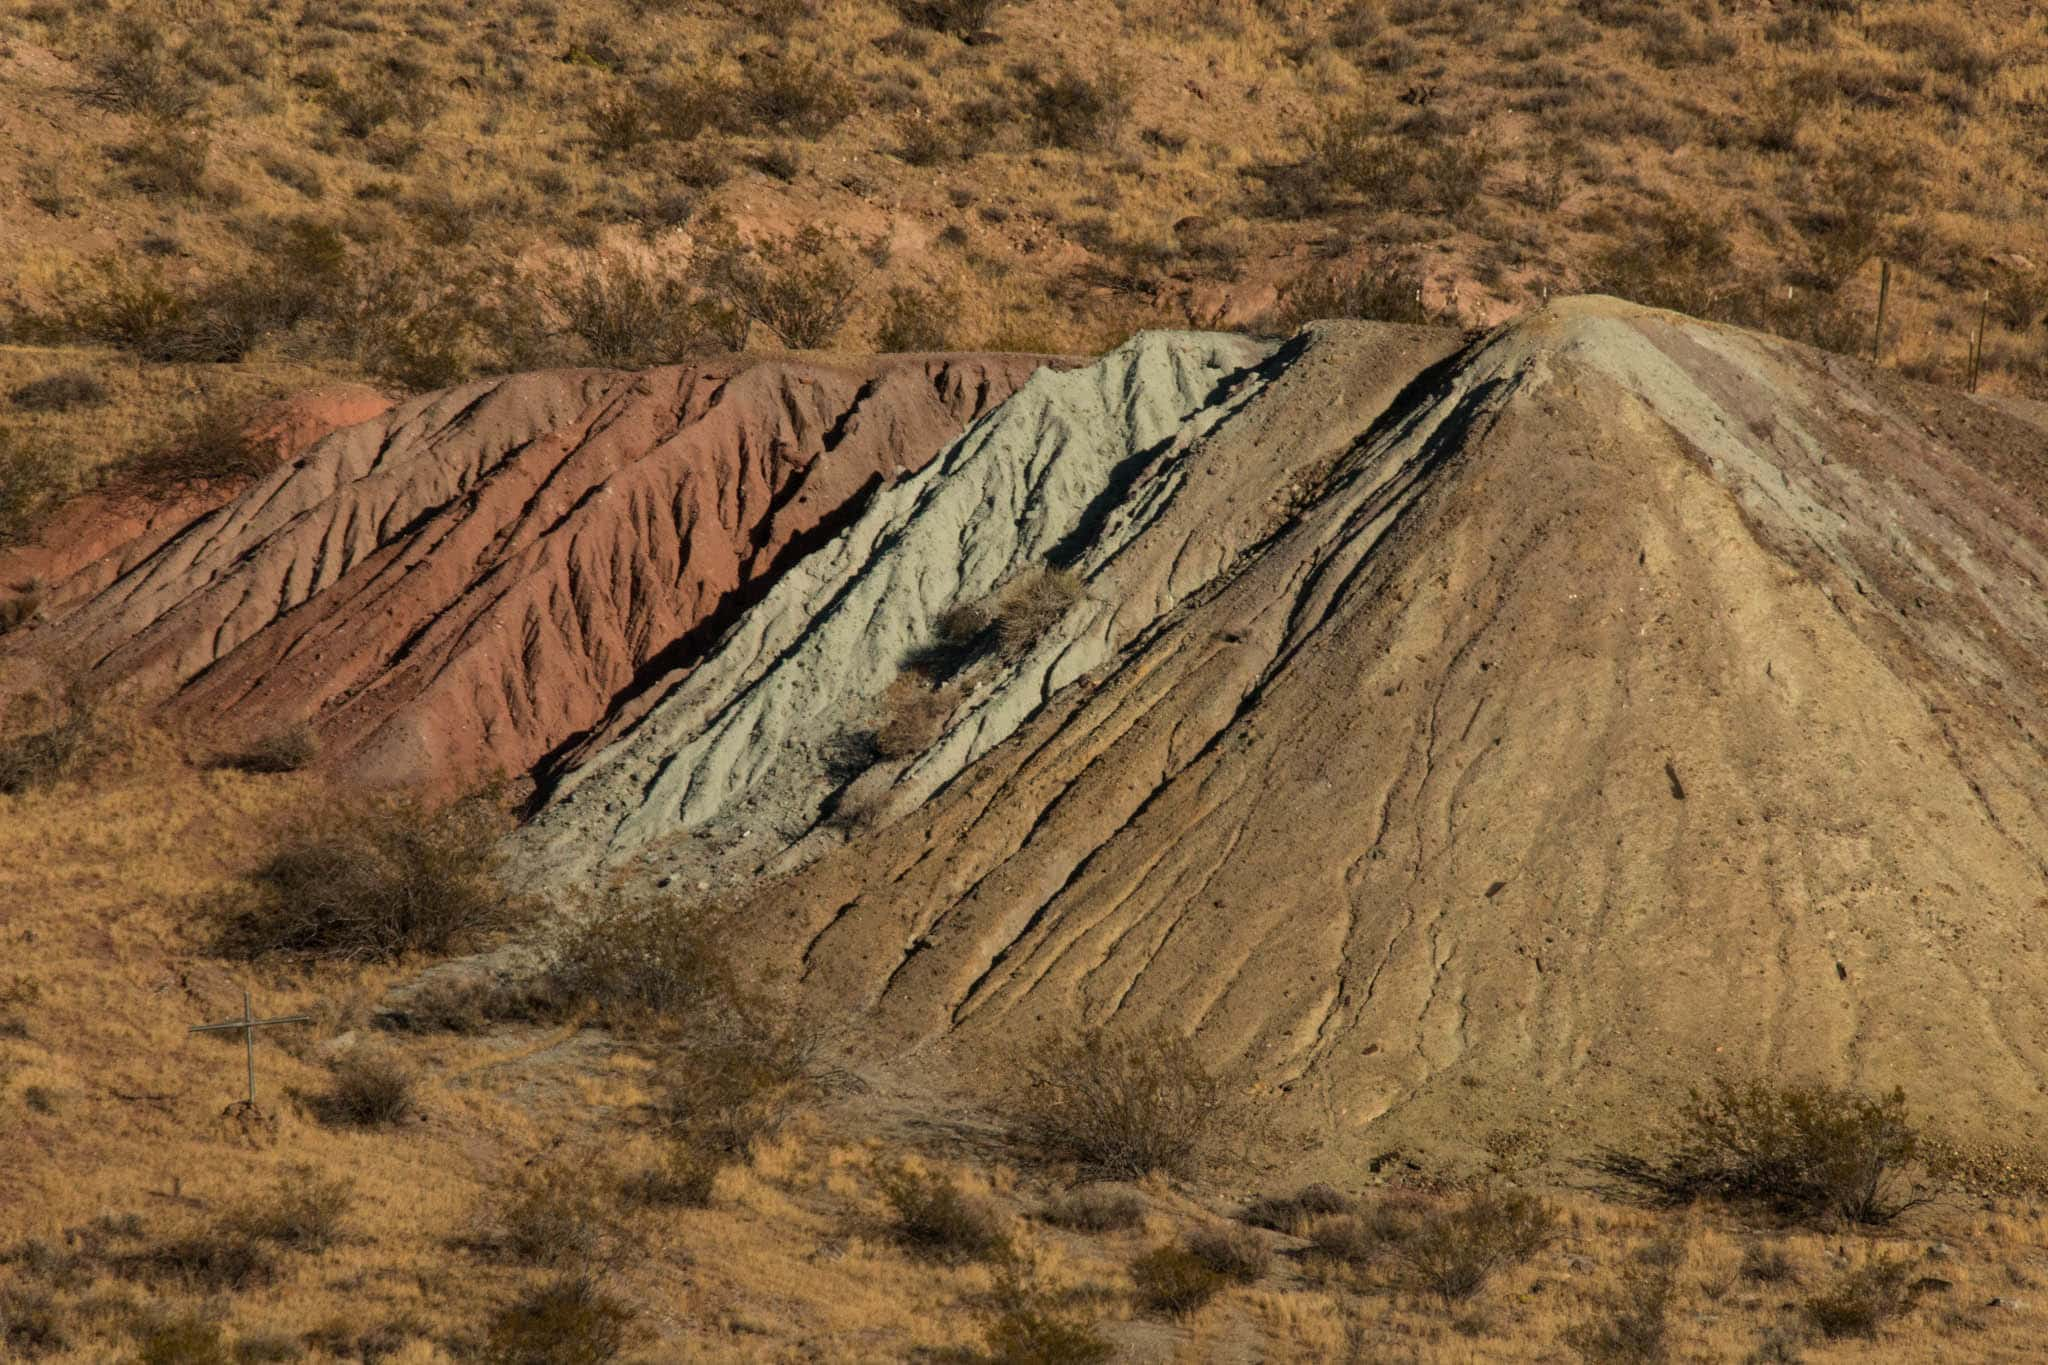 Tailings produced by mining operations